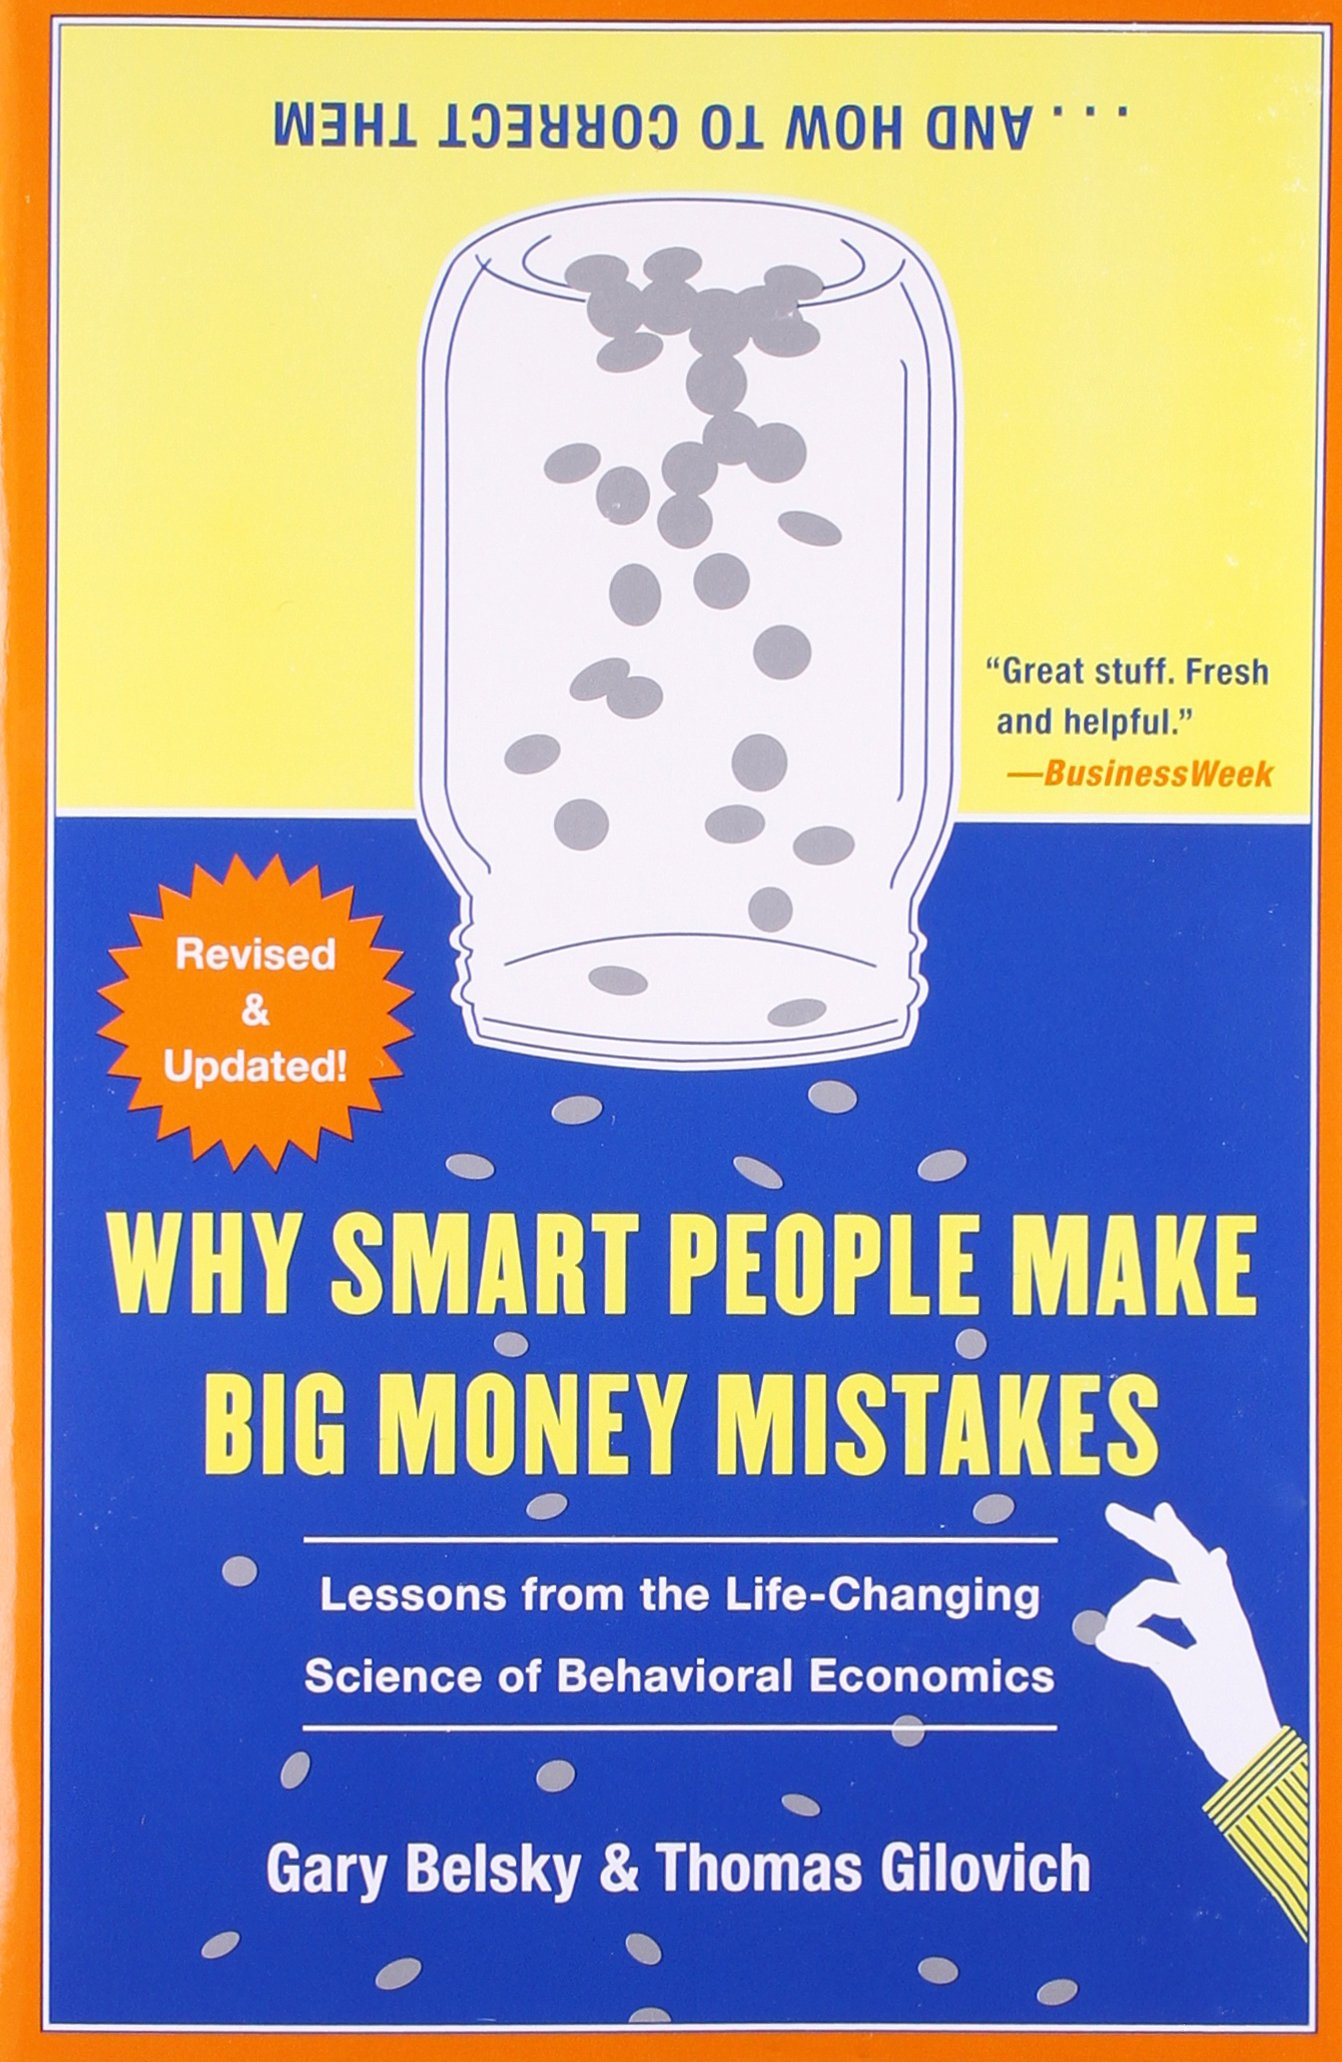 Why Smart People Make Big Money Mistakes, Gary Belsky & Thomas Gilovich